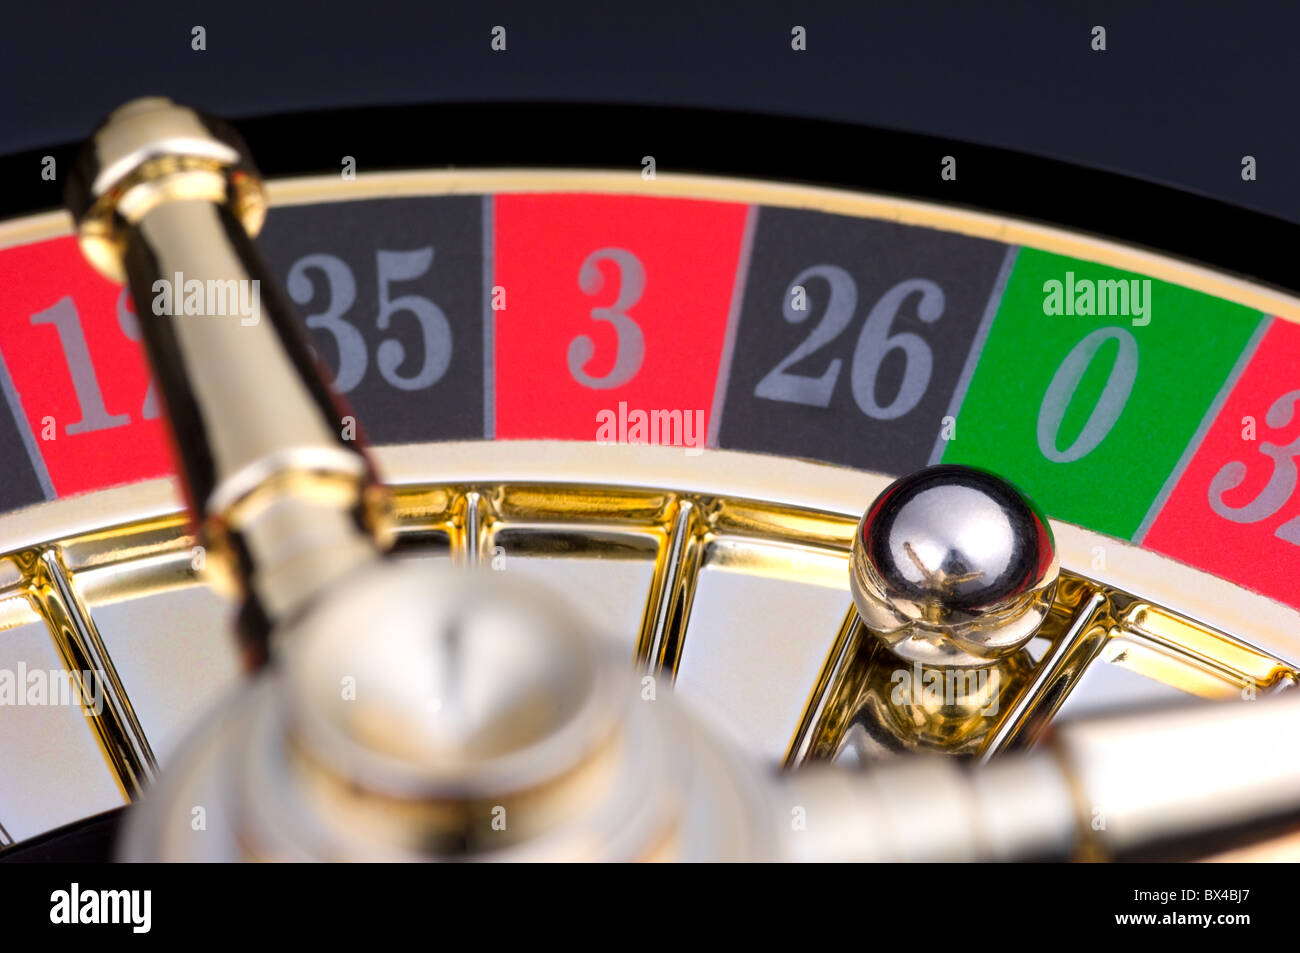 Roulette - Stock Image